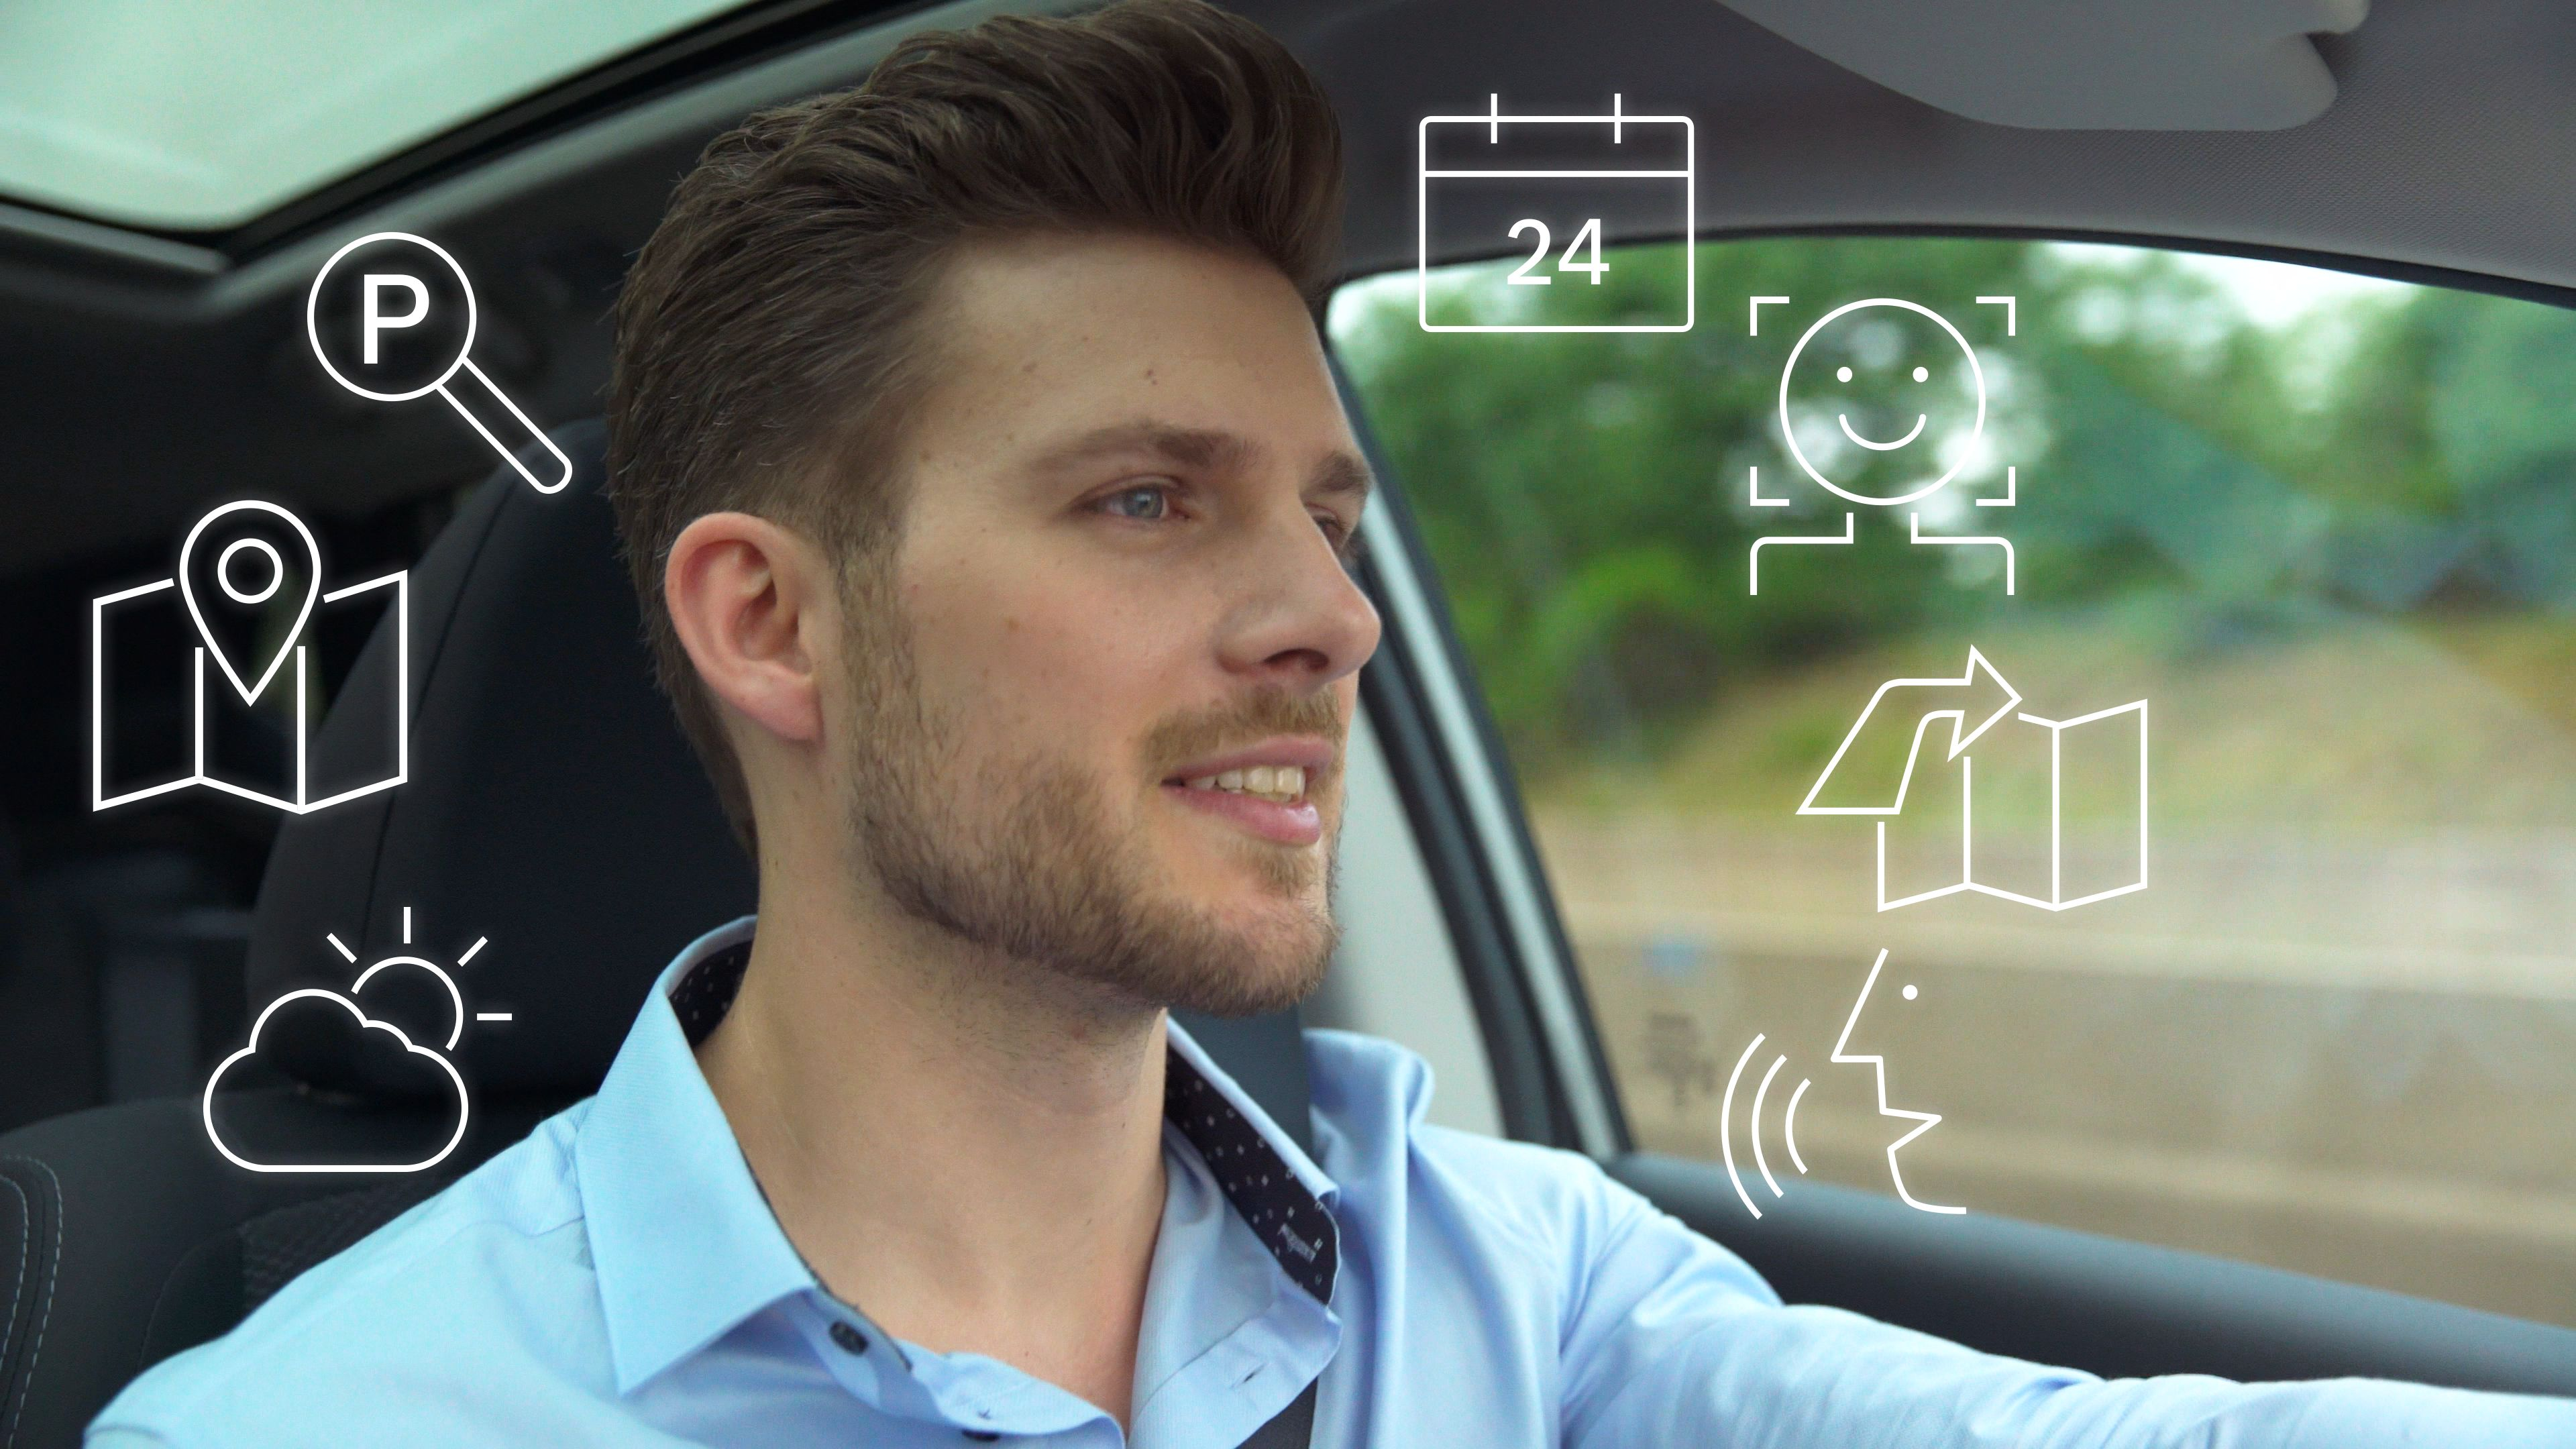 Bosch Voice Assistant Minimizes Driver Distraction